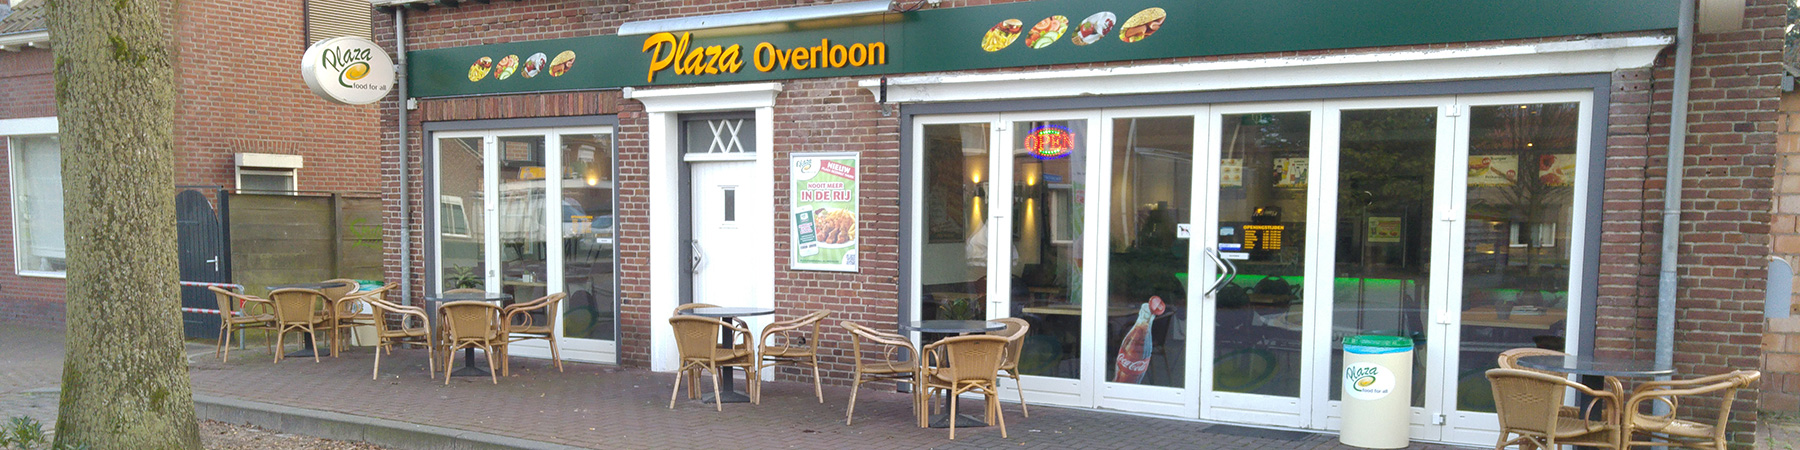 plaza-overloon2